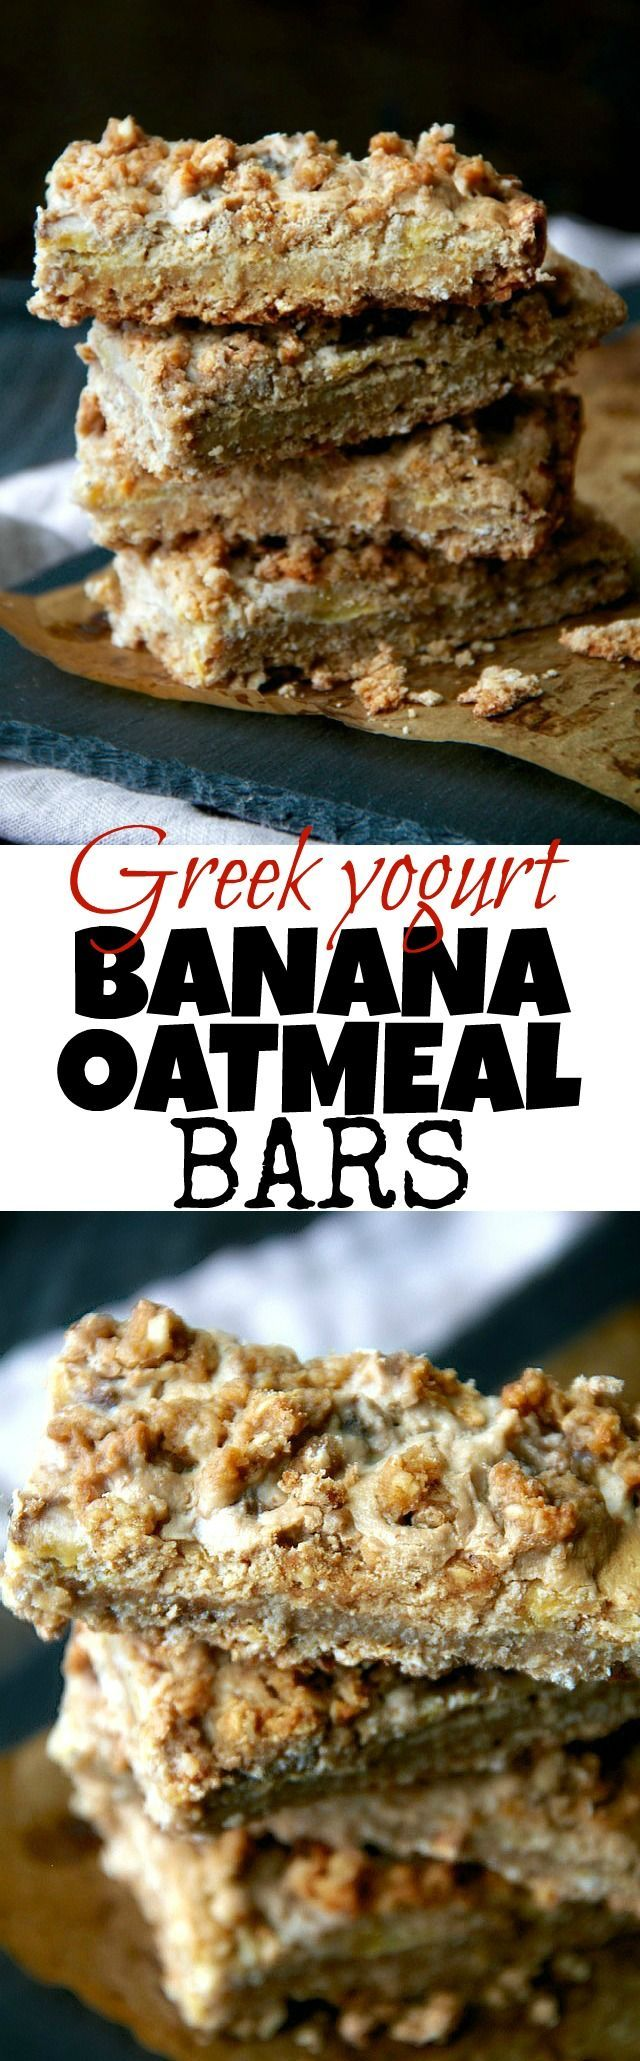 These soft-baked Greek Yogurt Banana Oatmeal Bars are gluten-free, refined-sugar-free, and made without any flour, butter or oil! A deliciously healthy breakfast or snack bar! | runningwithspoons... #recipe #glutenfree #flourless